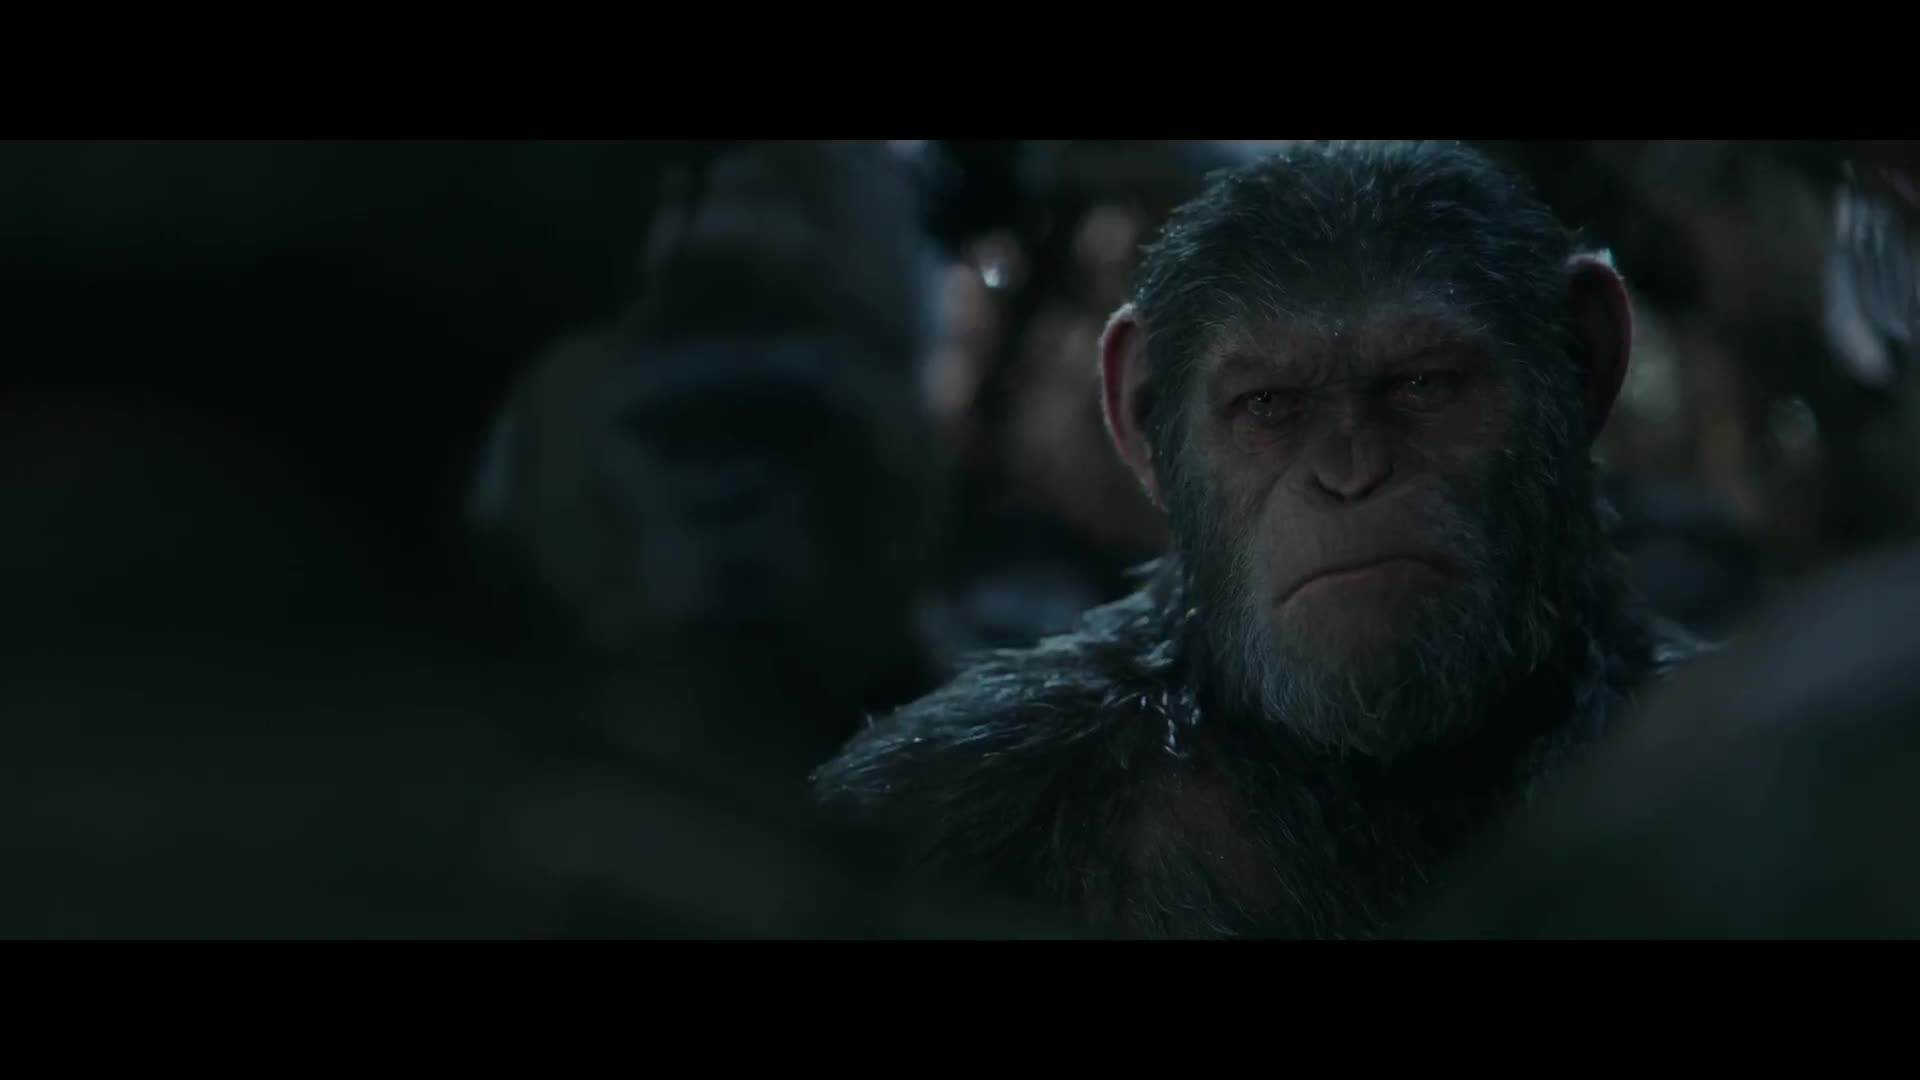 War for the Planet of the Apes มหาสงครามพิภพวานร (2017)